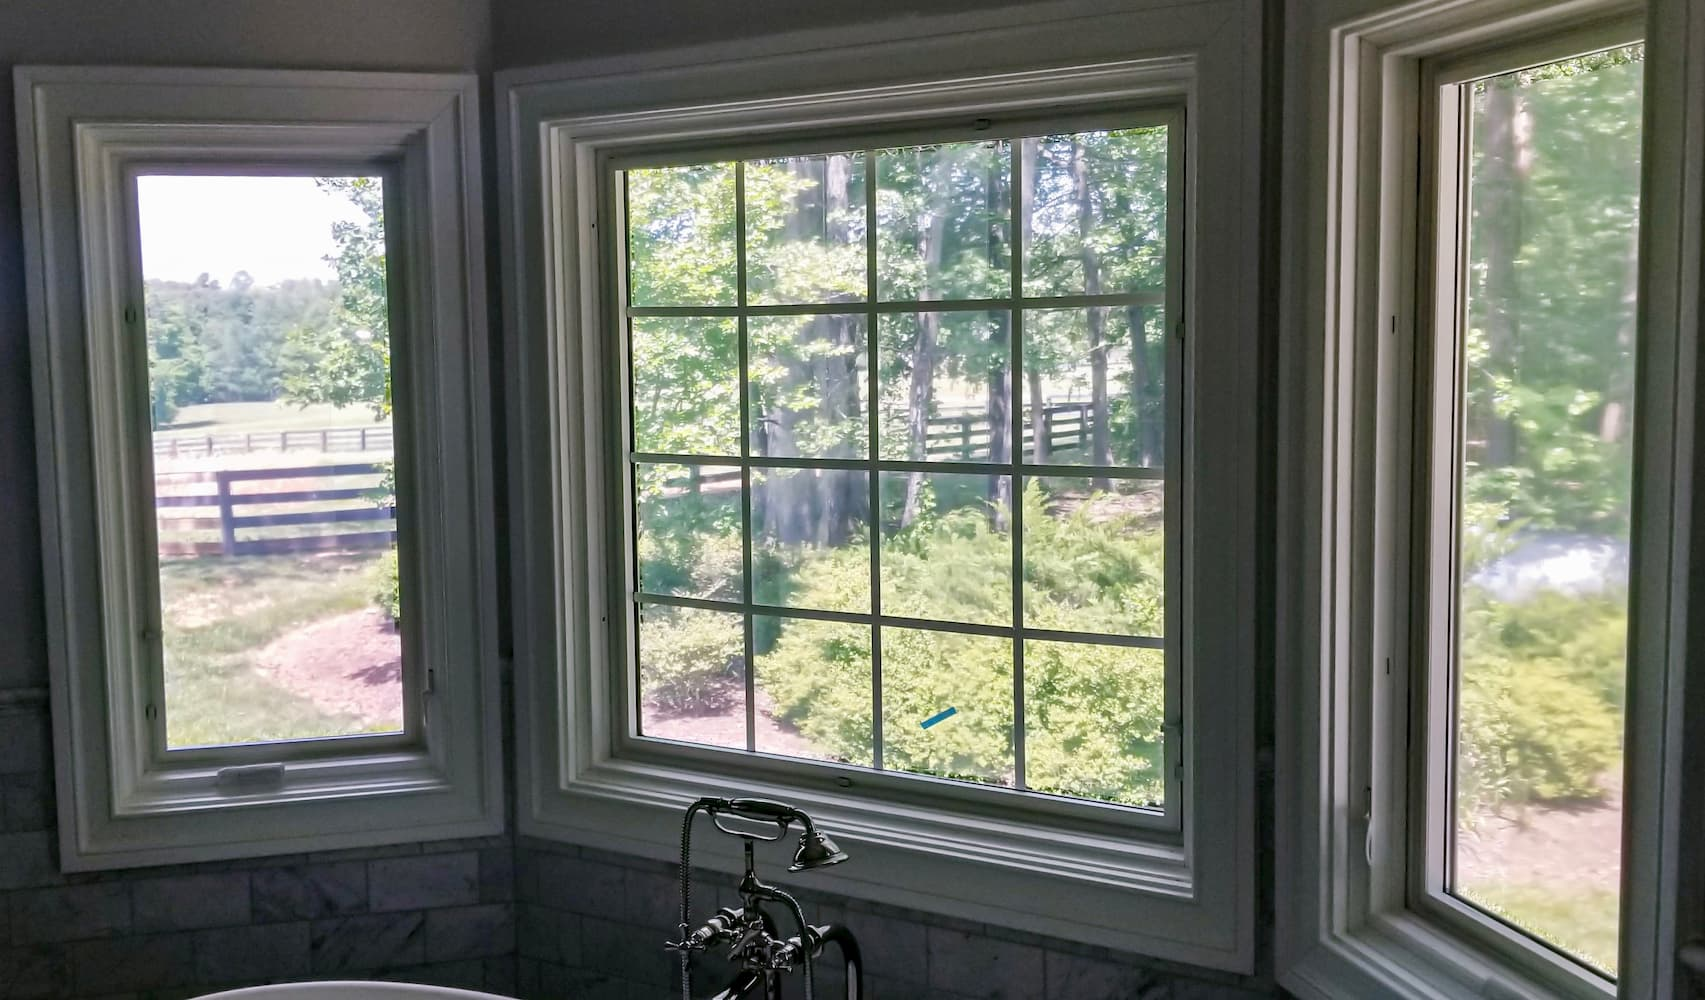 Two wood casement windows flanking a wood picture window with traditional grille pattern